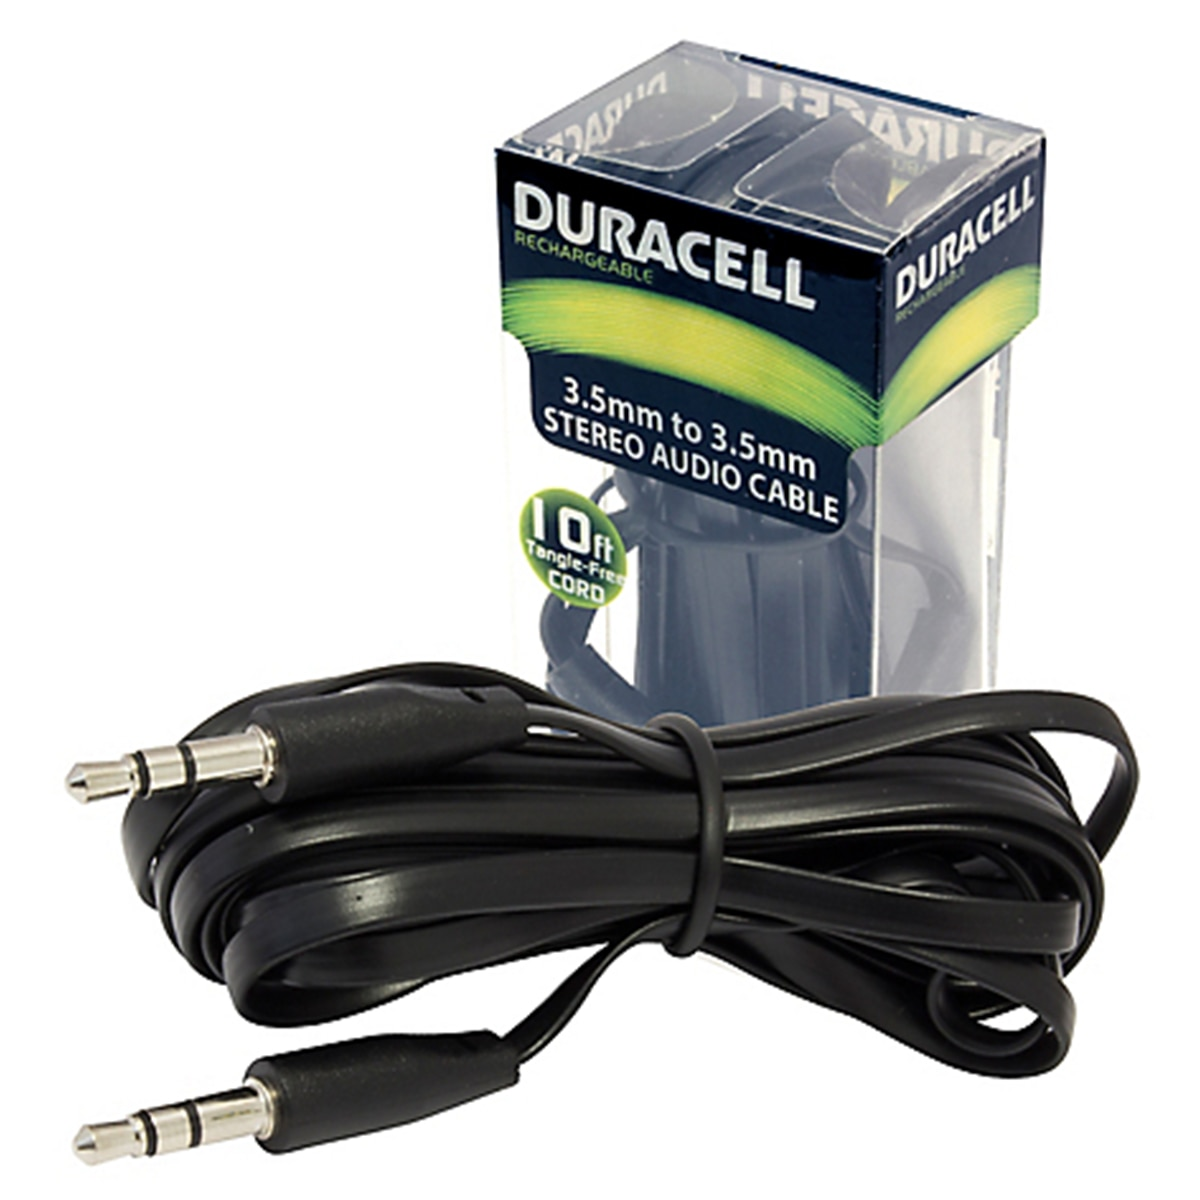 Stereo Audio Cable 3.5Mm & 10Ft Duracell